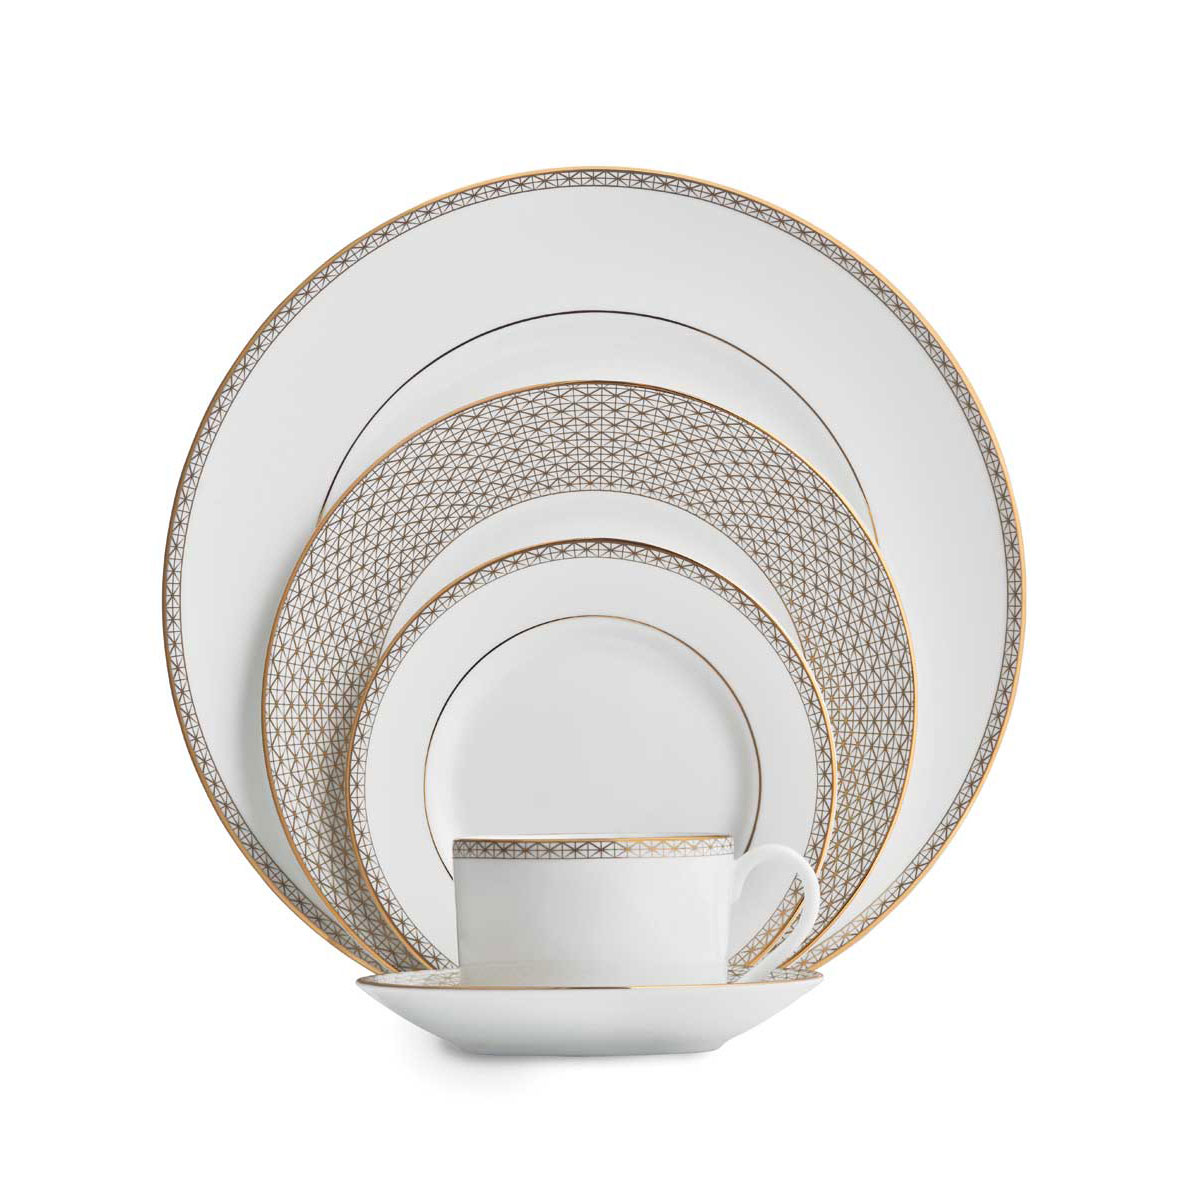 Waterford China Lismore Diamond Gold, 5 Piece Place Setting